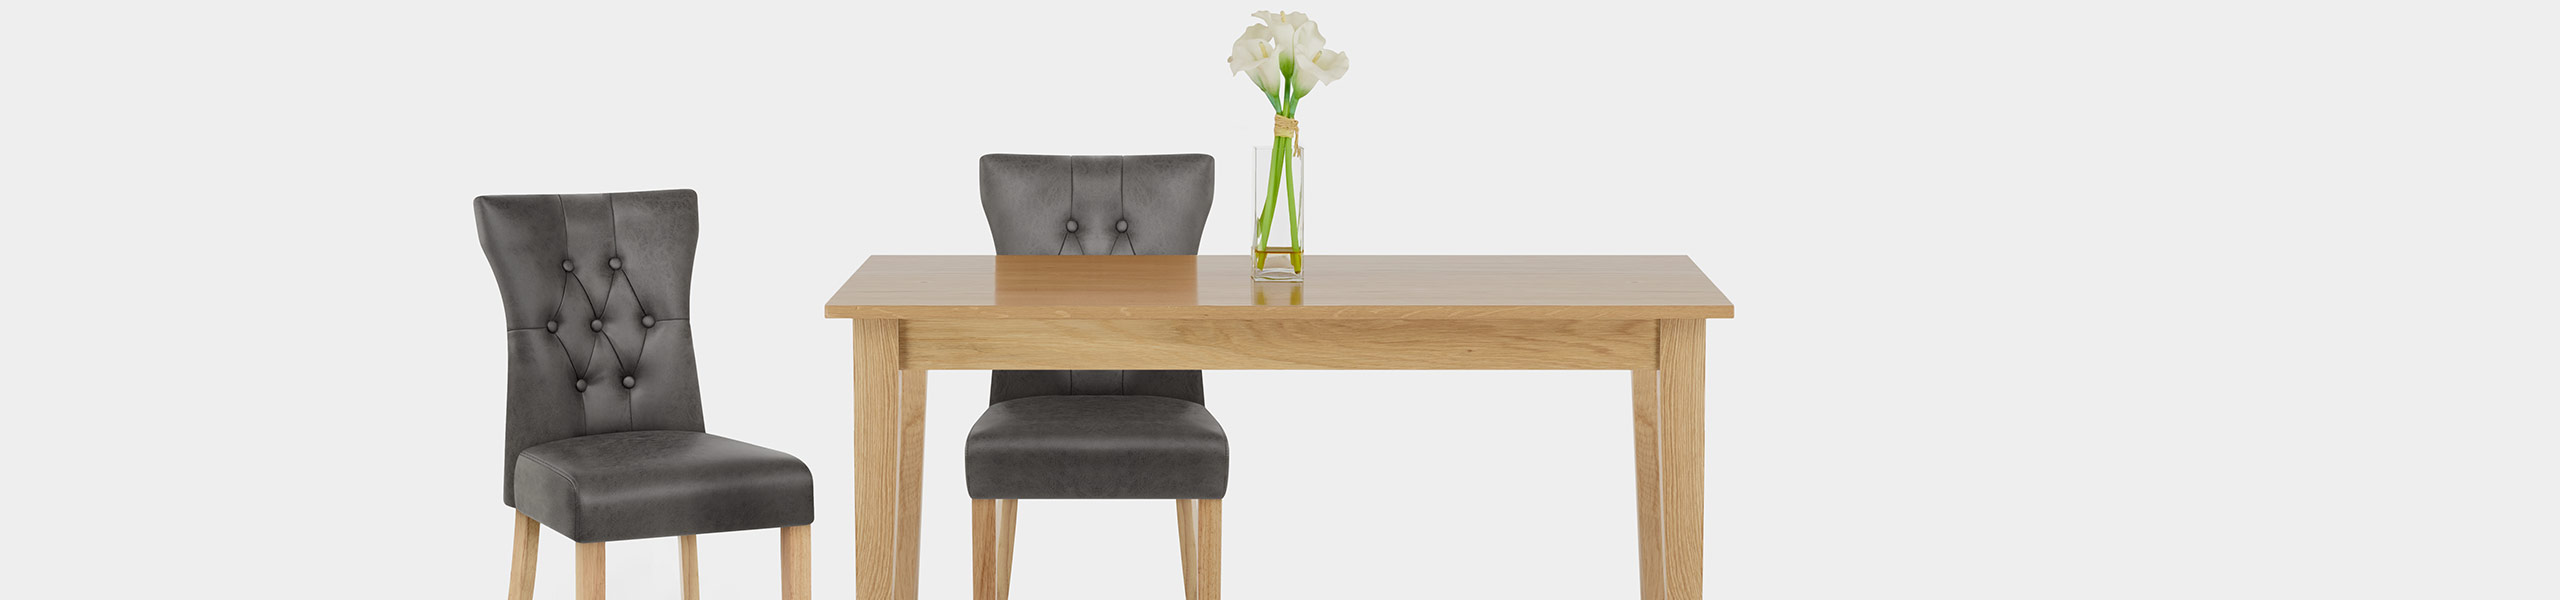 Bradbury Oak Dining Chair Grey Video Banner